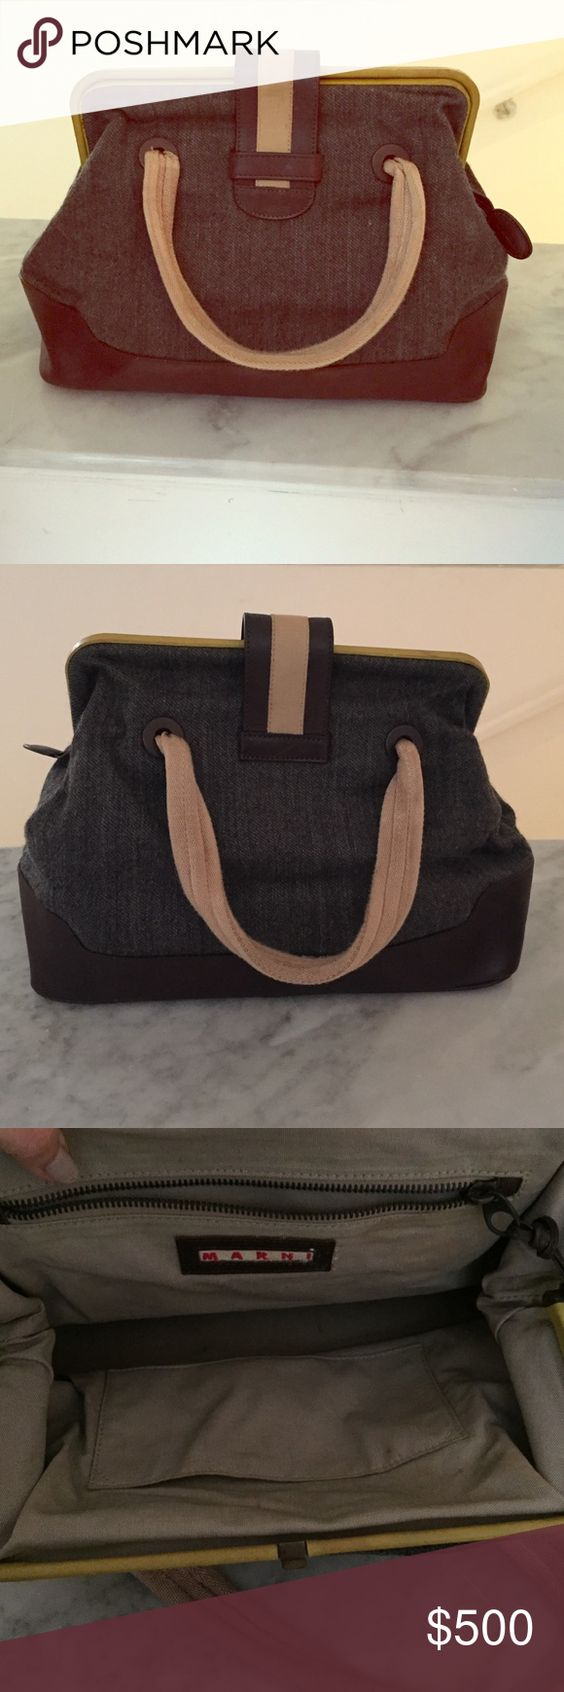 Marni doctor bag It's a vintage Marni doctor bag, very really good condition, no major flaws, a fee tiny stains but they don't show. Marni Bags